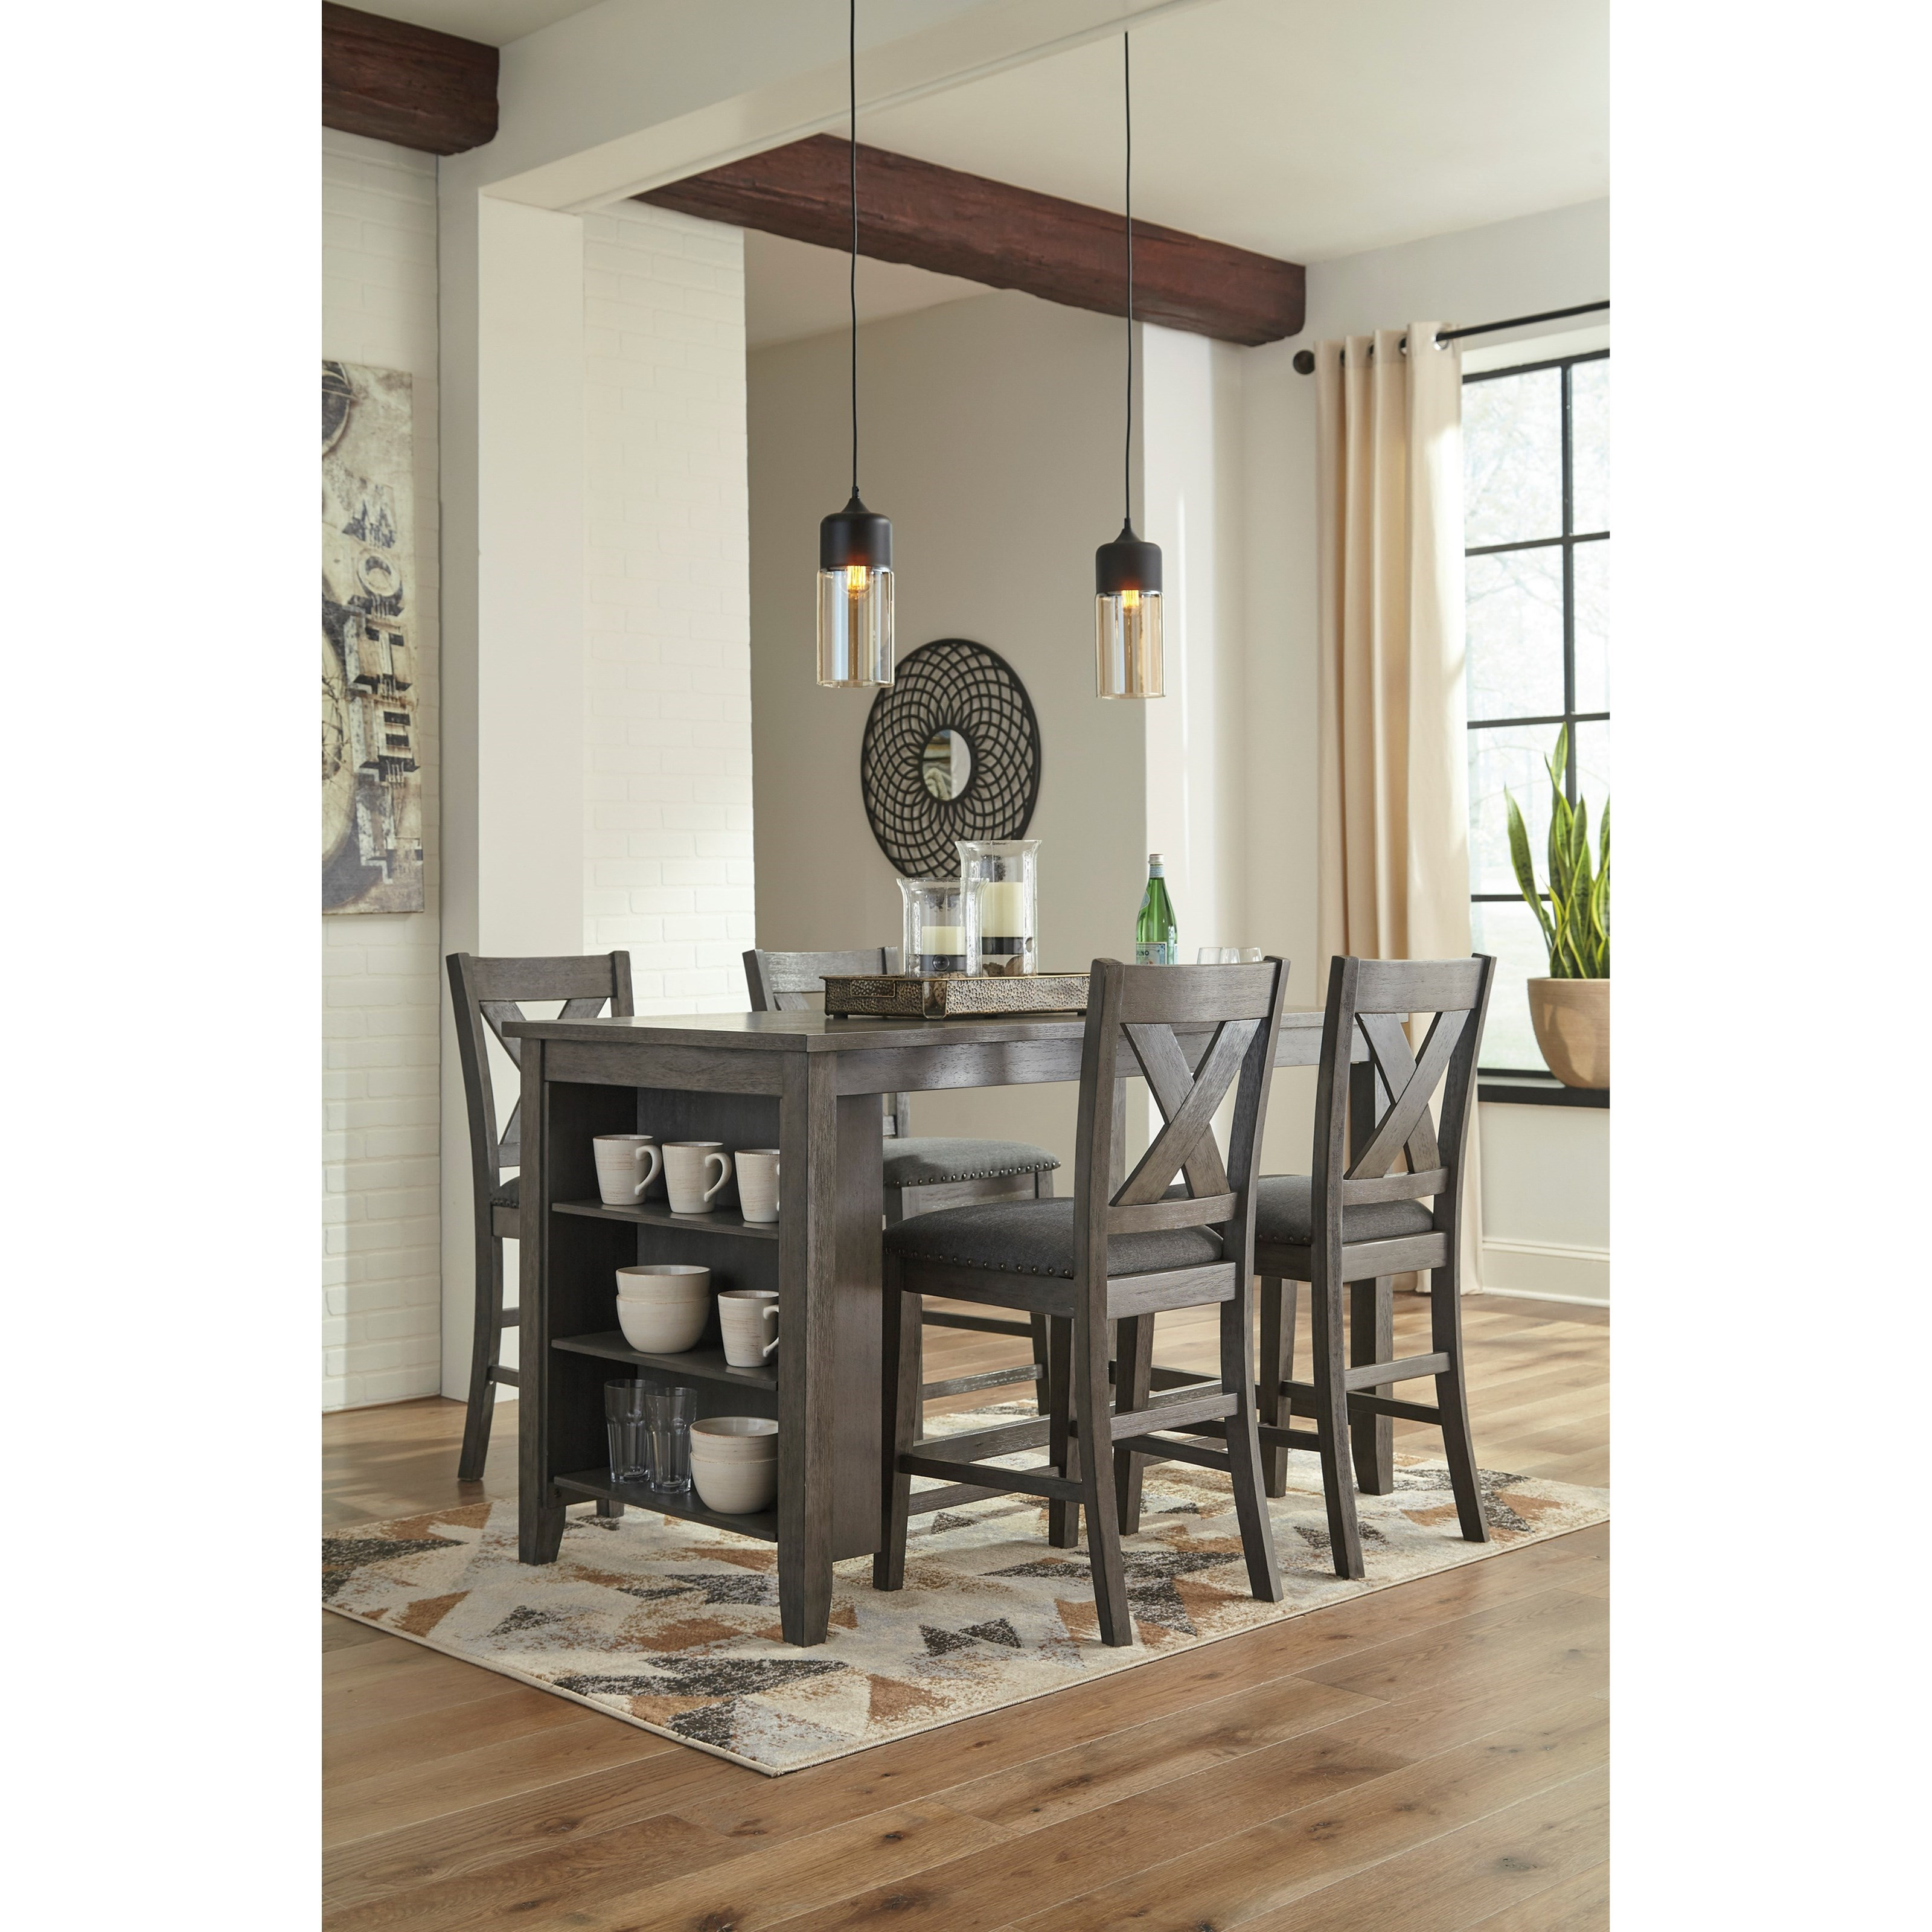 Signature Home Furnishings: Signature Design By Ashley Caitbrook Relaxed Vintage Solid